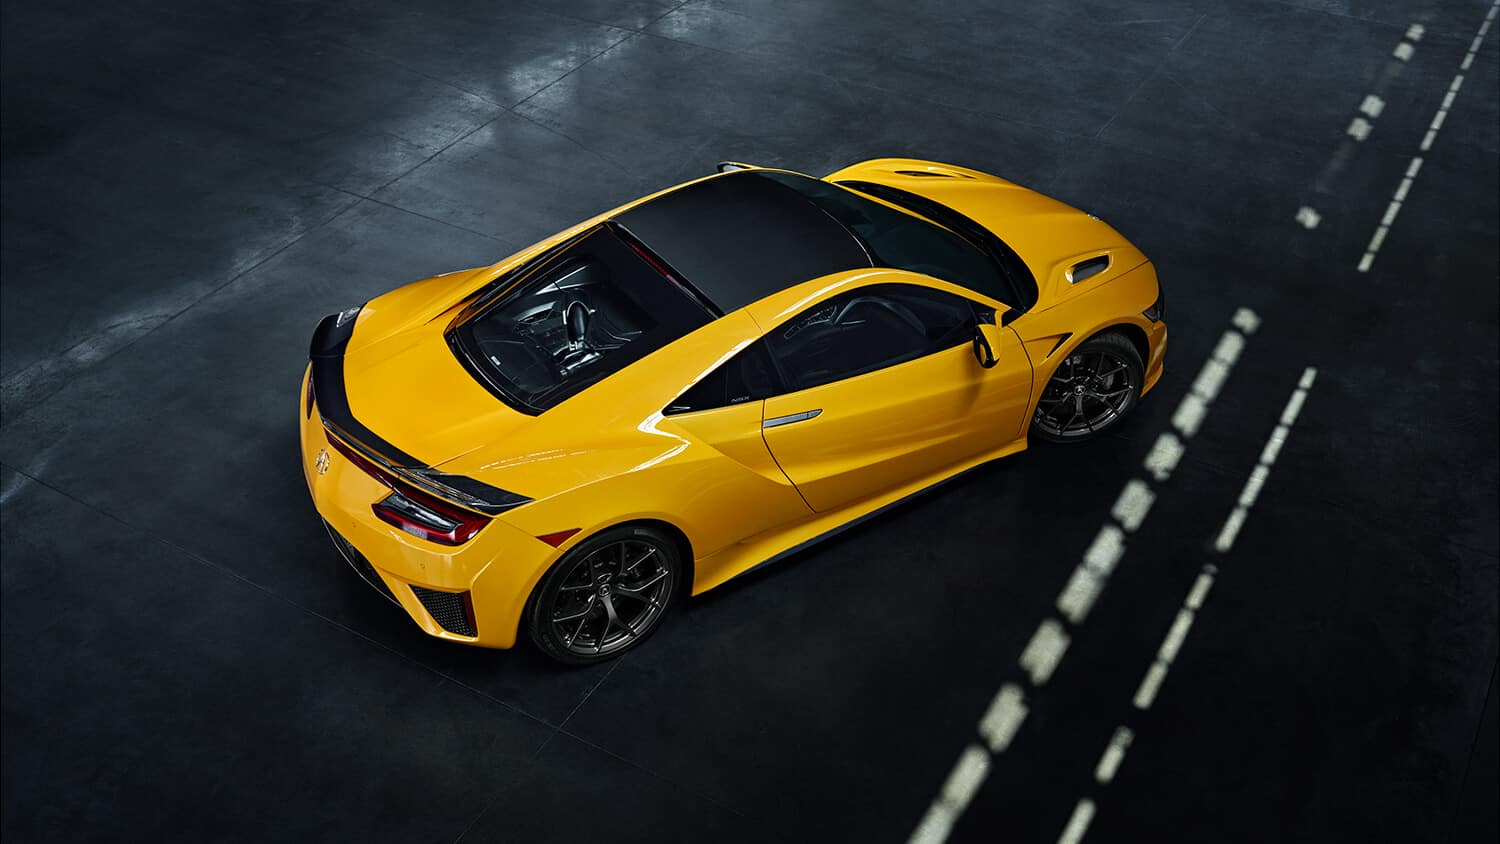 2020 Acura NSX Exterior Indy Yellow Pearl Overhead Angle